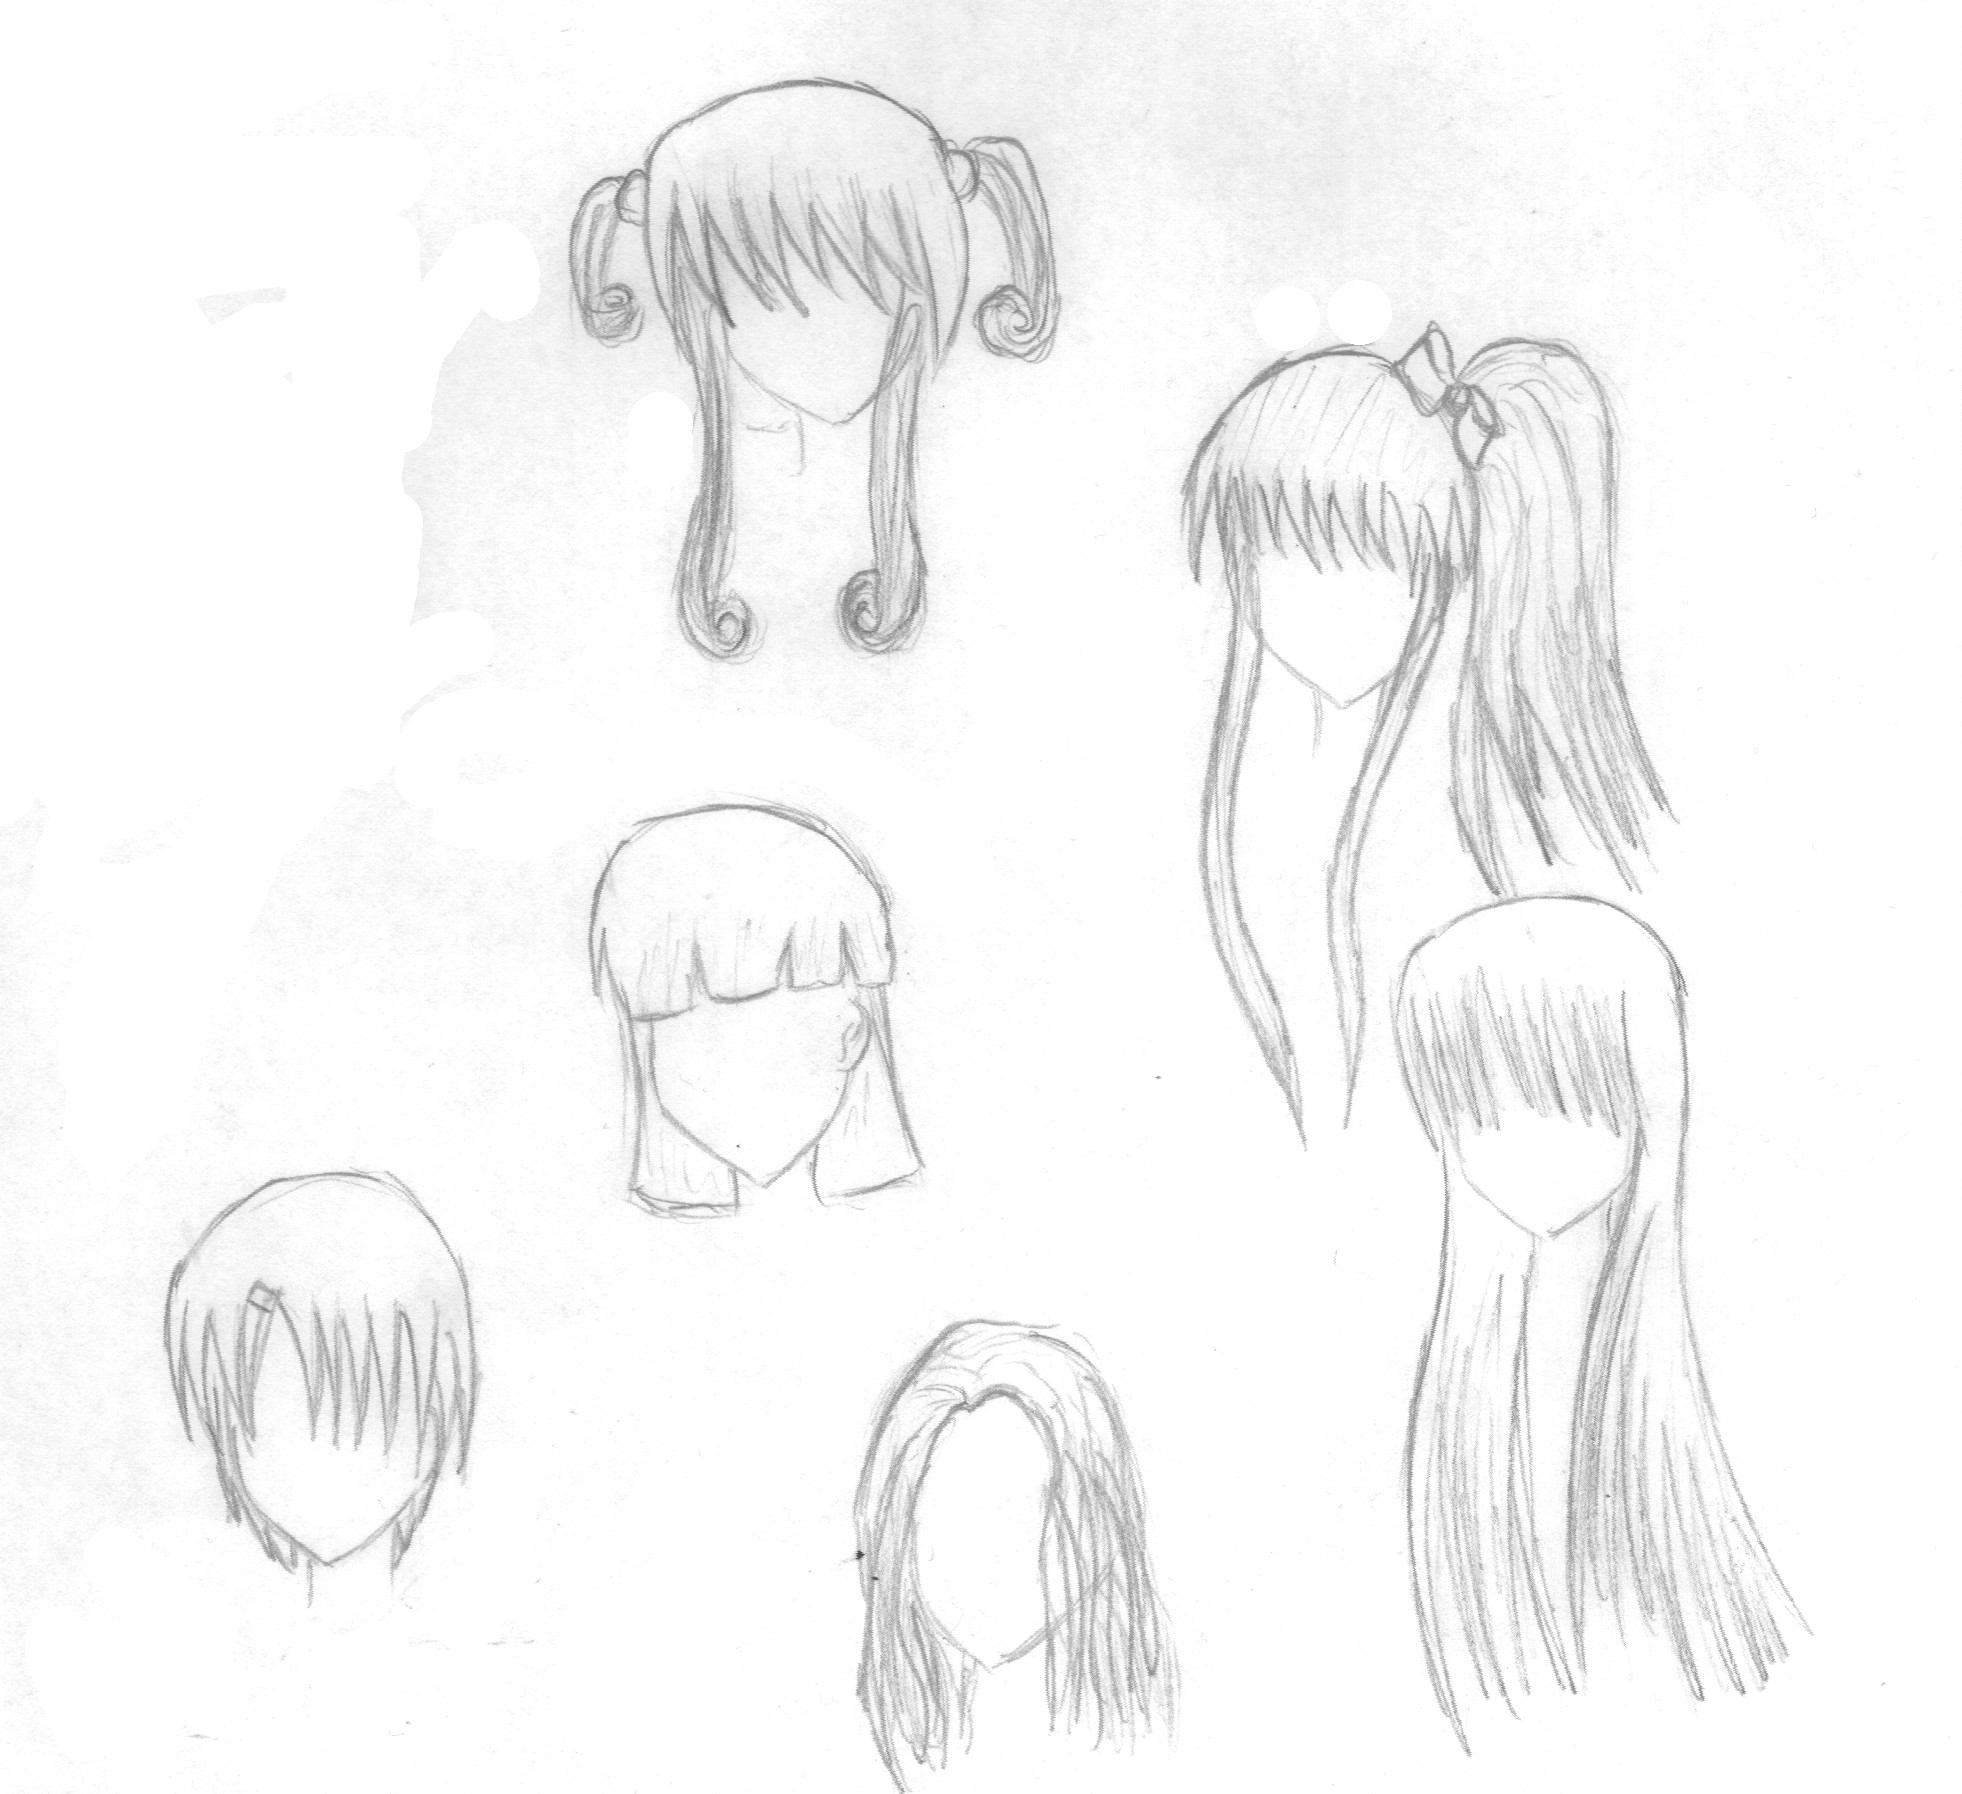 Anime The Drawing World Images Anime Girl Hair Styles Hd